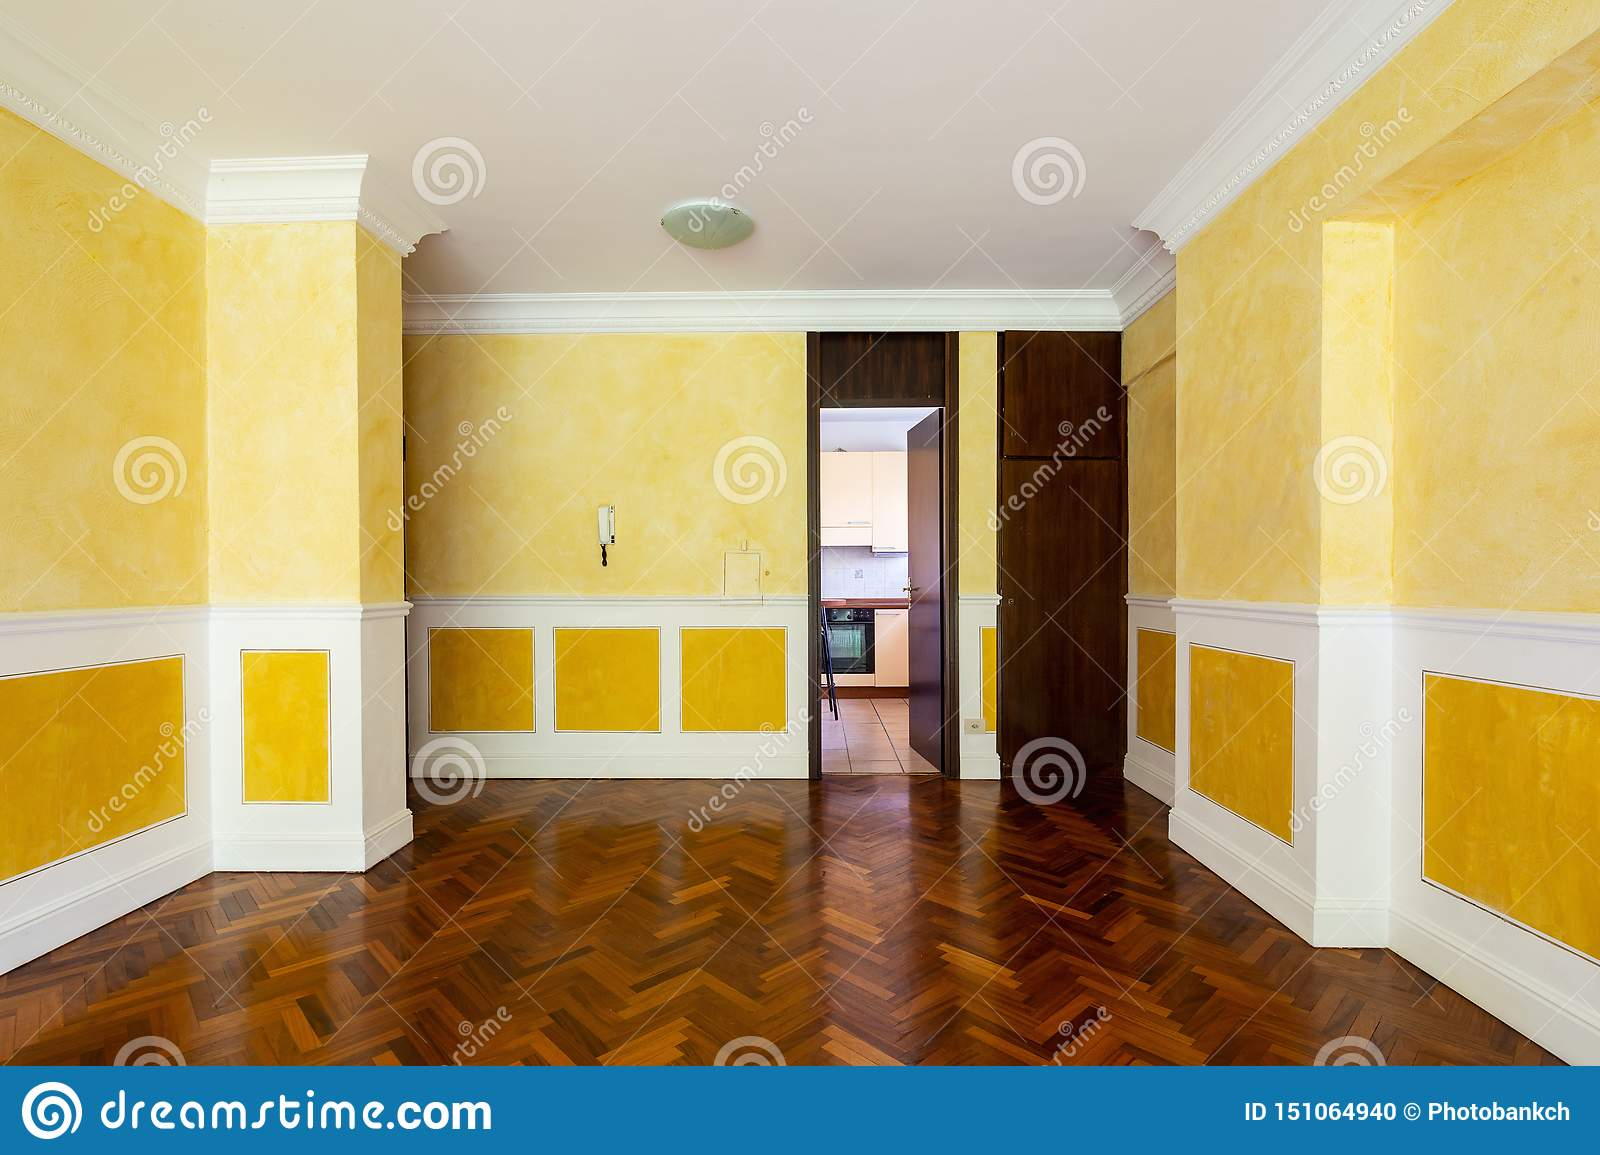 Front View Living Room With Door To Kitchen Stock Photo Image Of Flat Interior 151064940